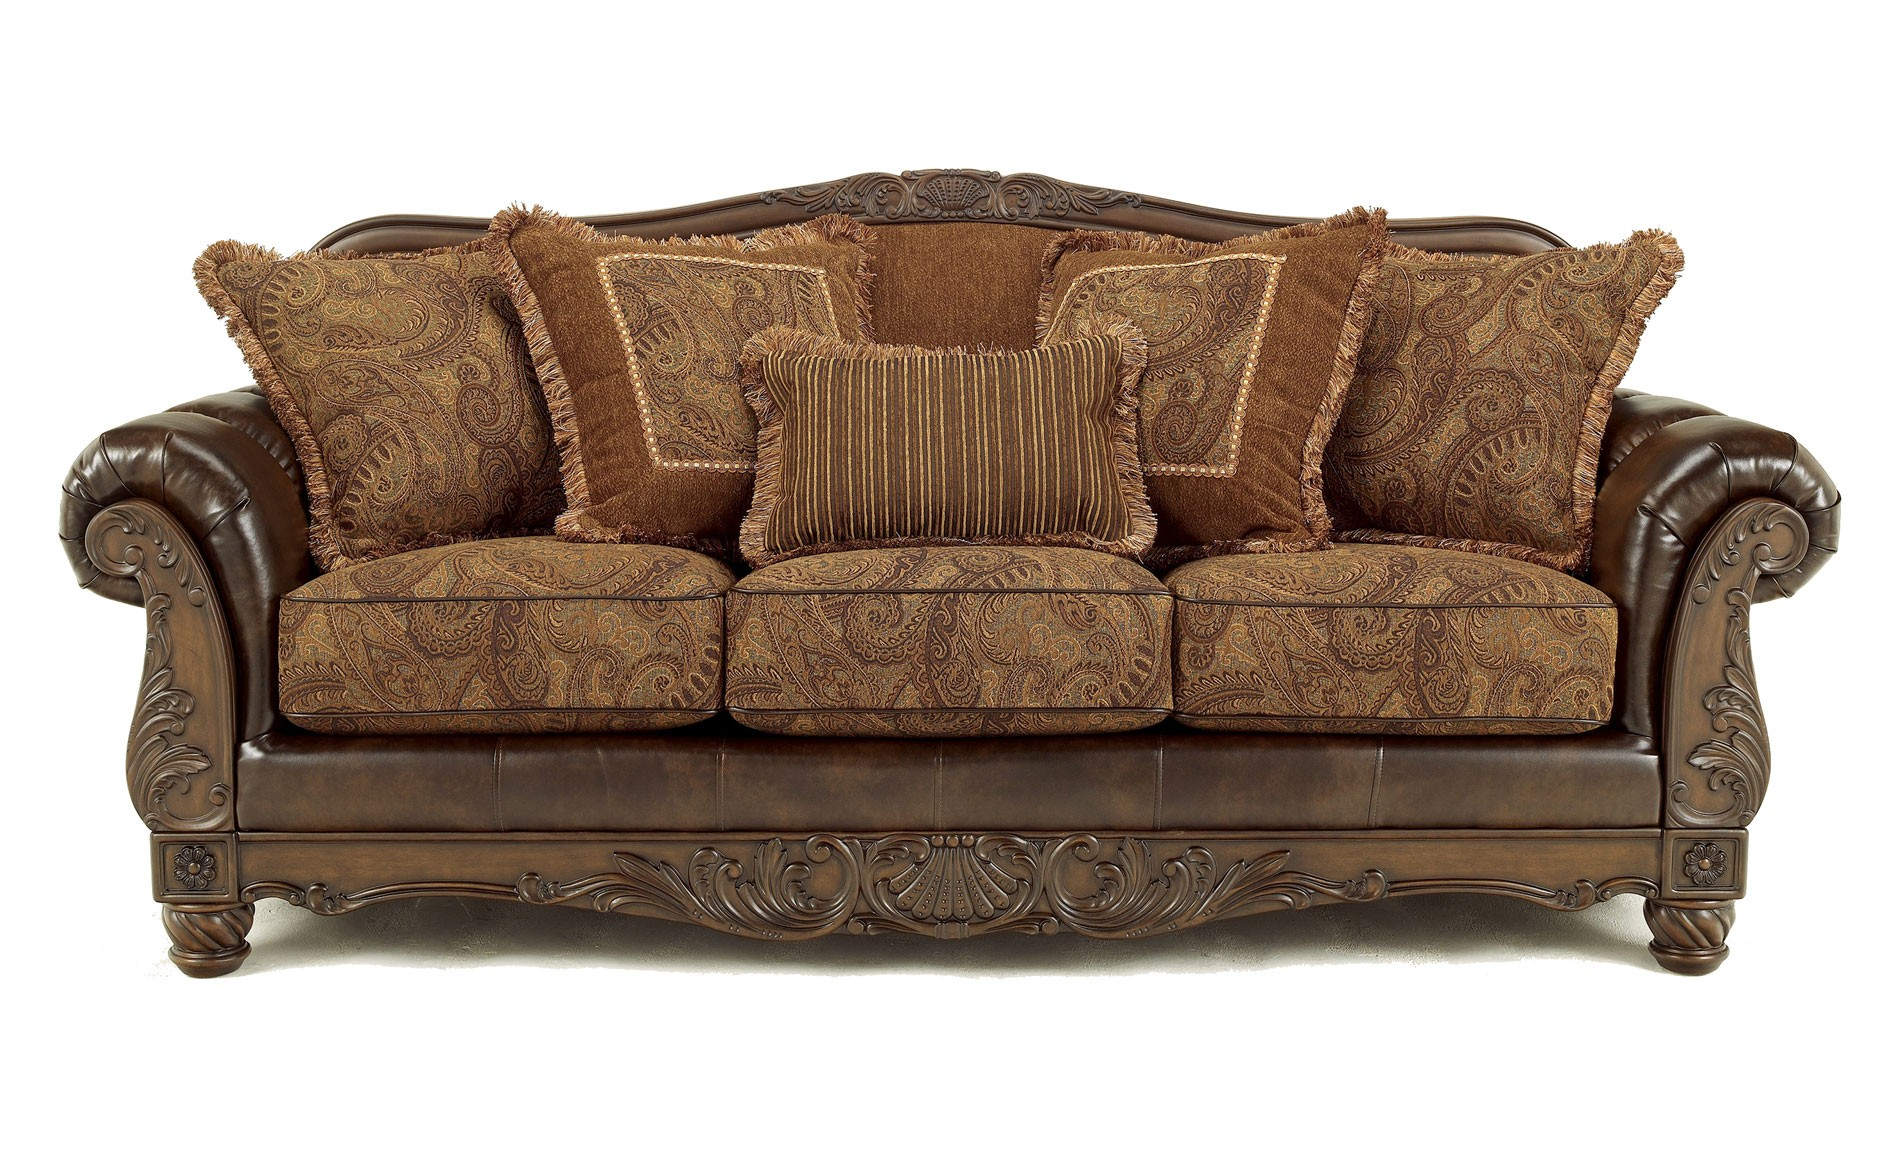 Antique Sofa Styles Pictures Fresh Antique Sofa Styles 72